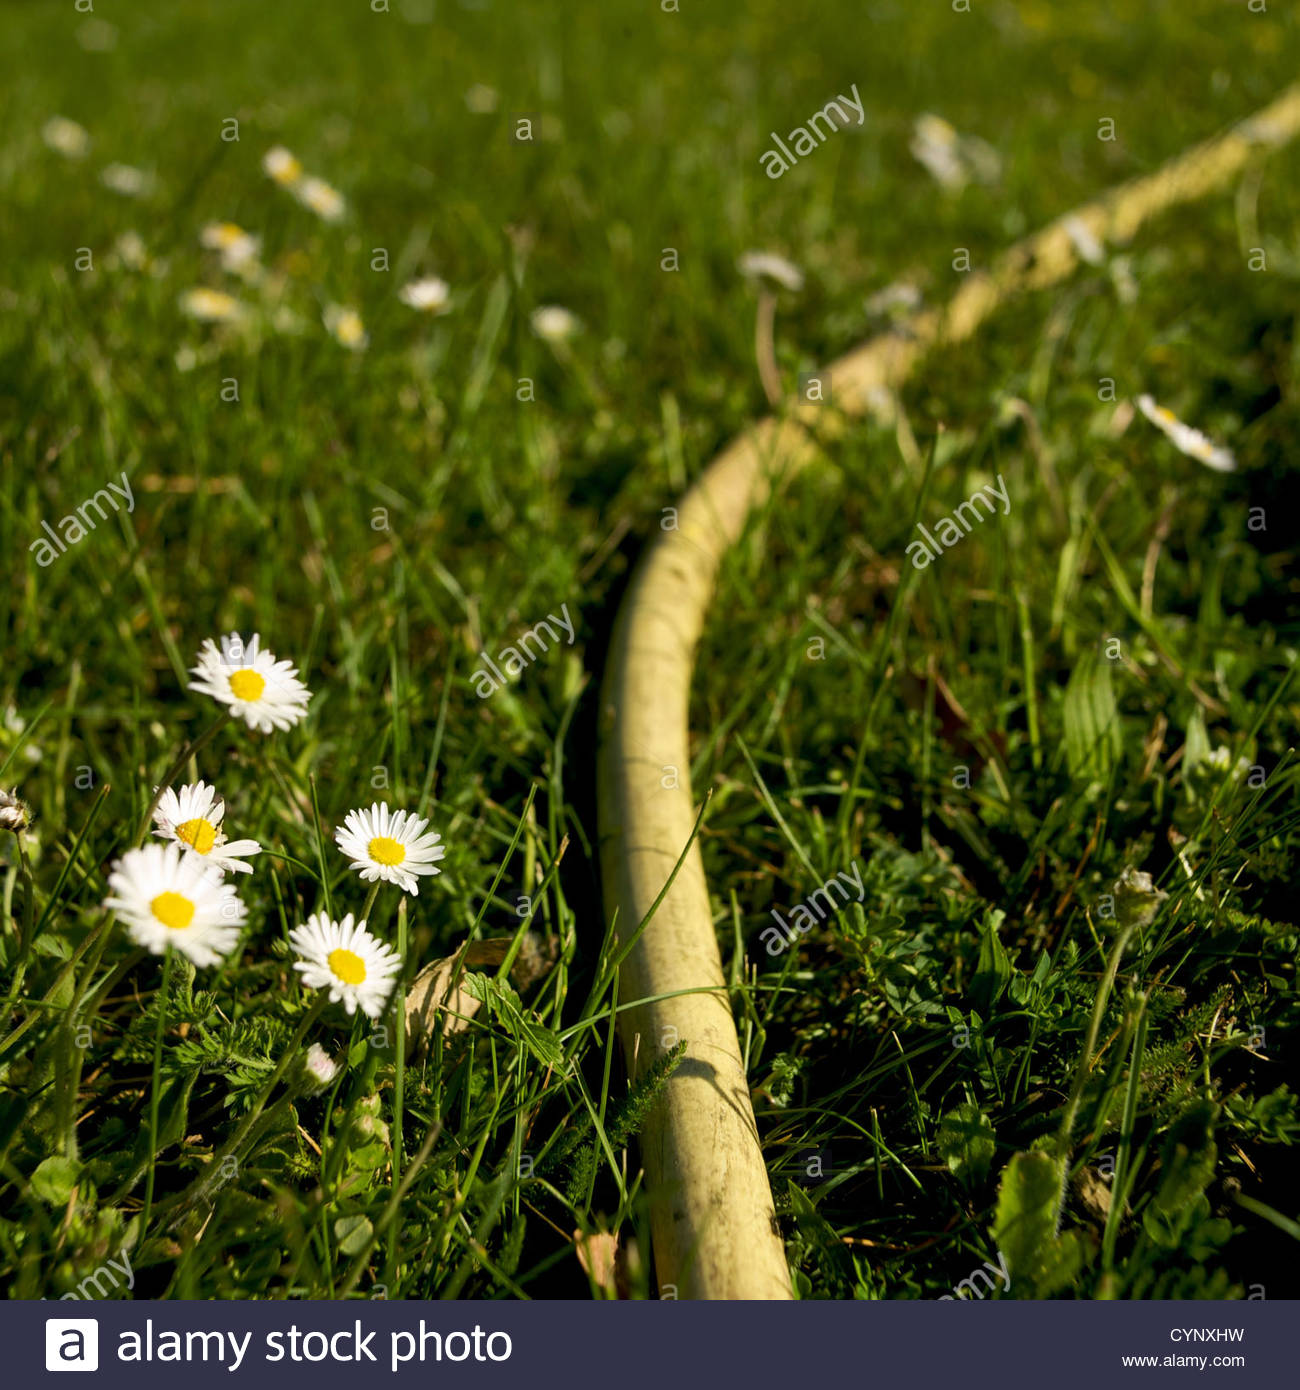 Yellow hosepipe on grass with daisies - Stock Image